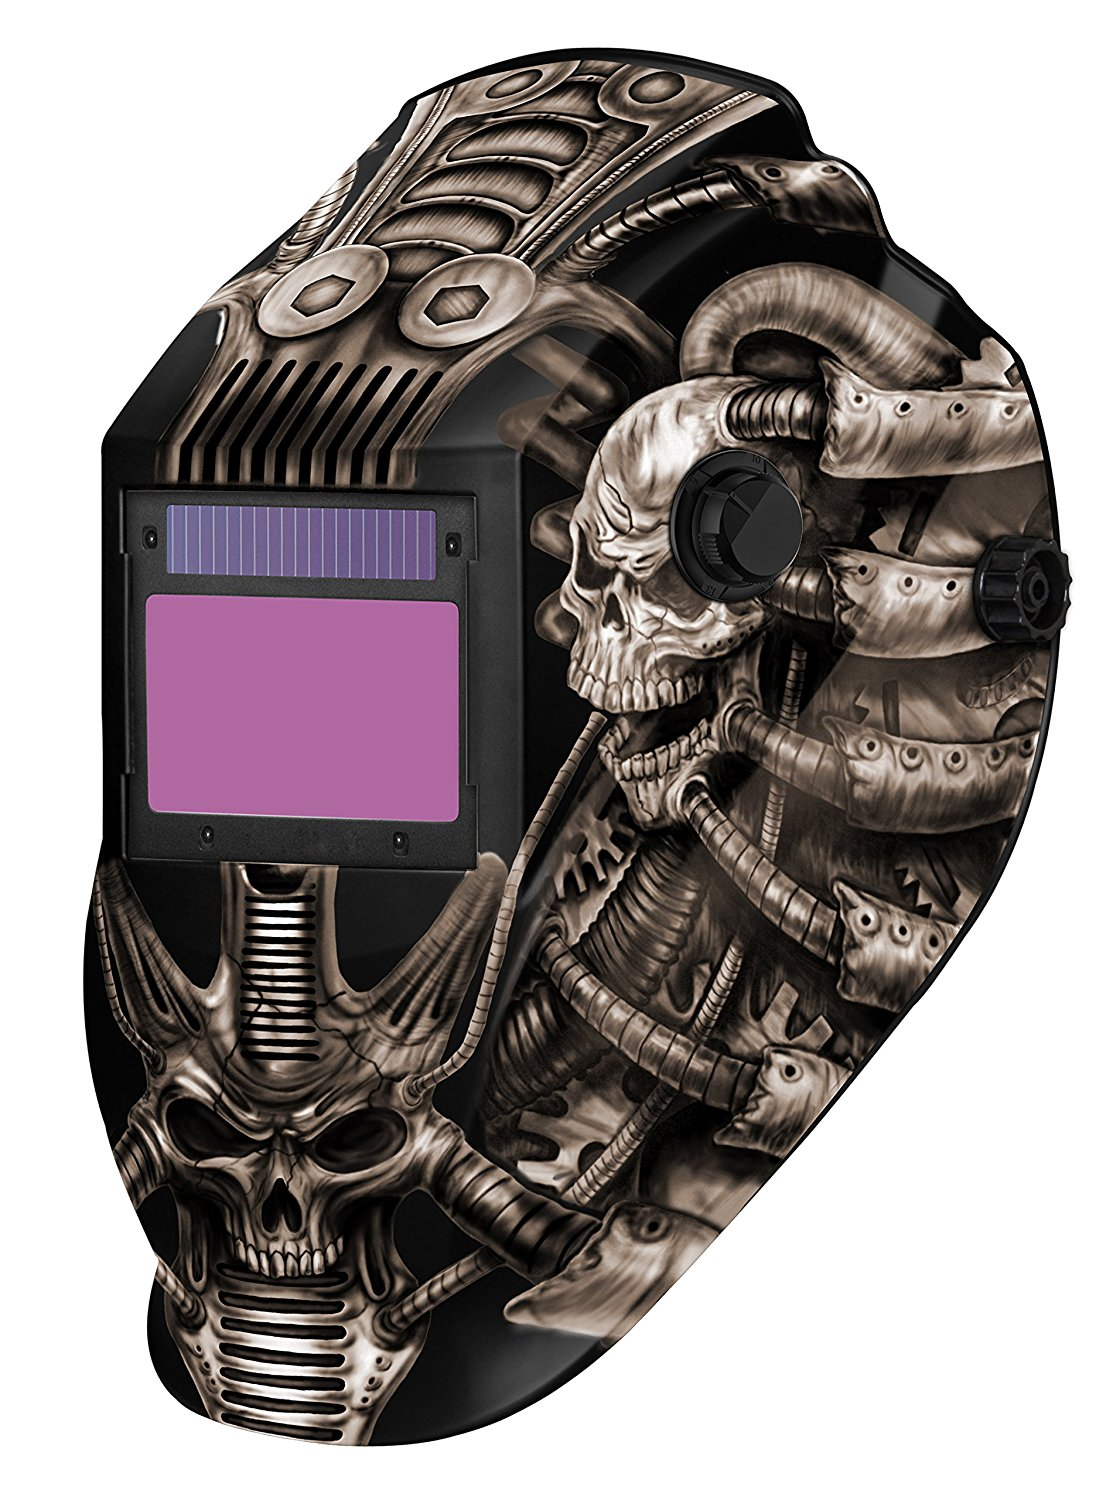 Metal Man ATEC8735SGC 9-13 Variable Shade Professional Auto-Darkening Welding Helmet, Techno Skull